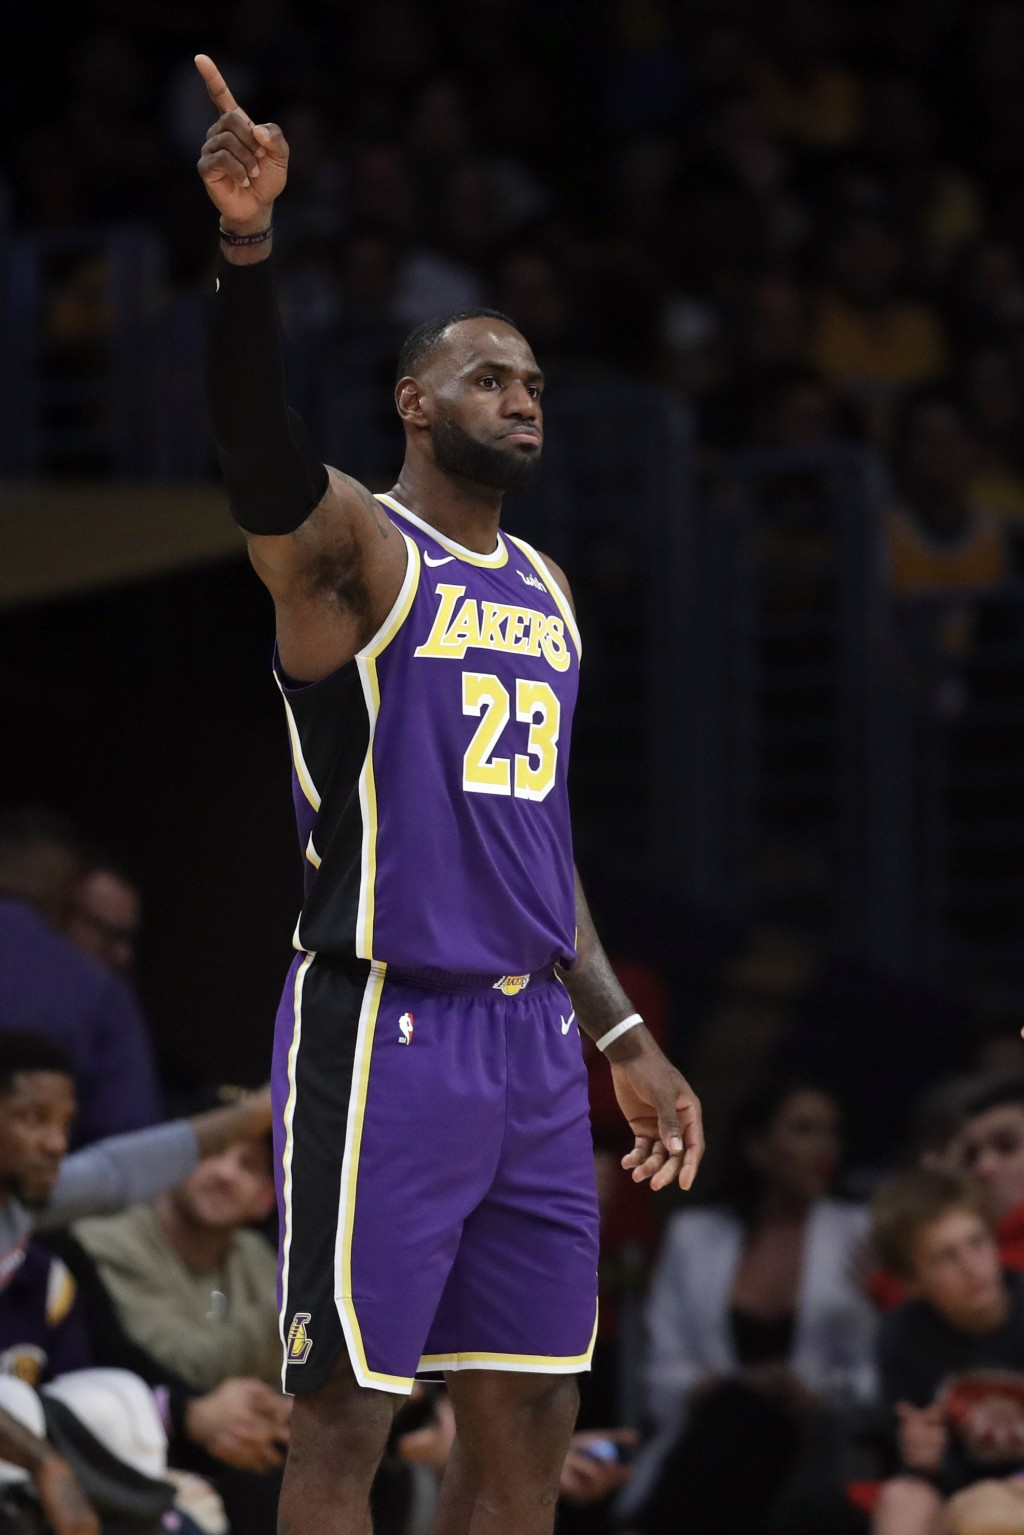 Los Angeles Lakers' LeBron James (23) signals during the first half of the team's NBA basketball game against the Miami Heat on Friday, Nov. 8, 2019, ...